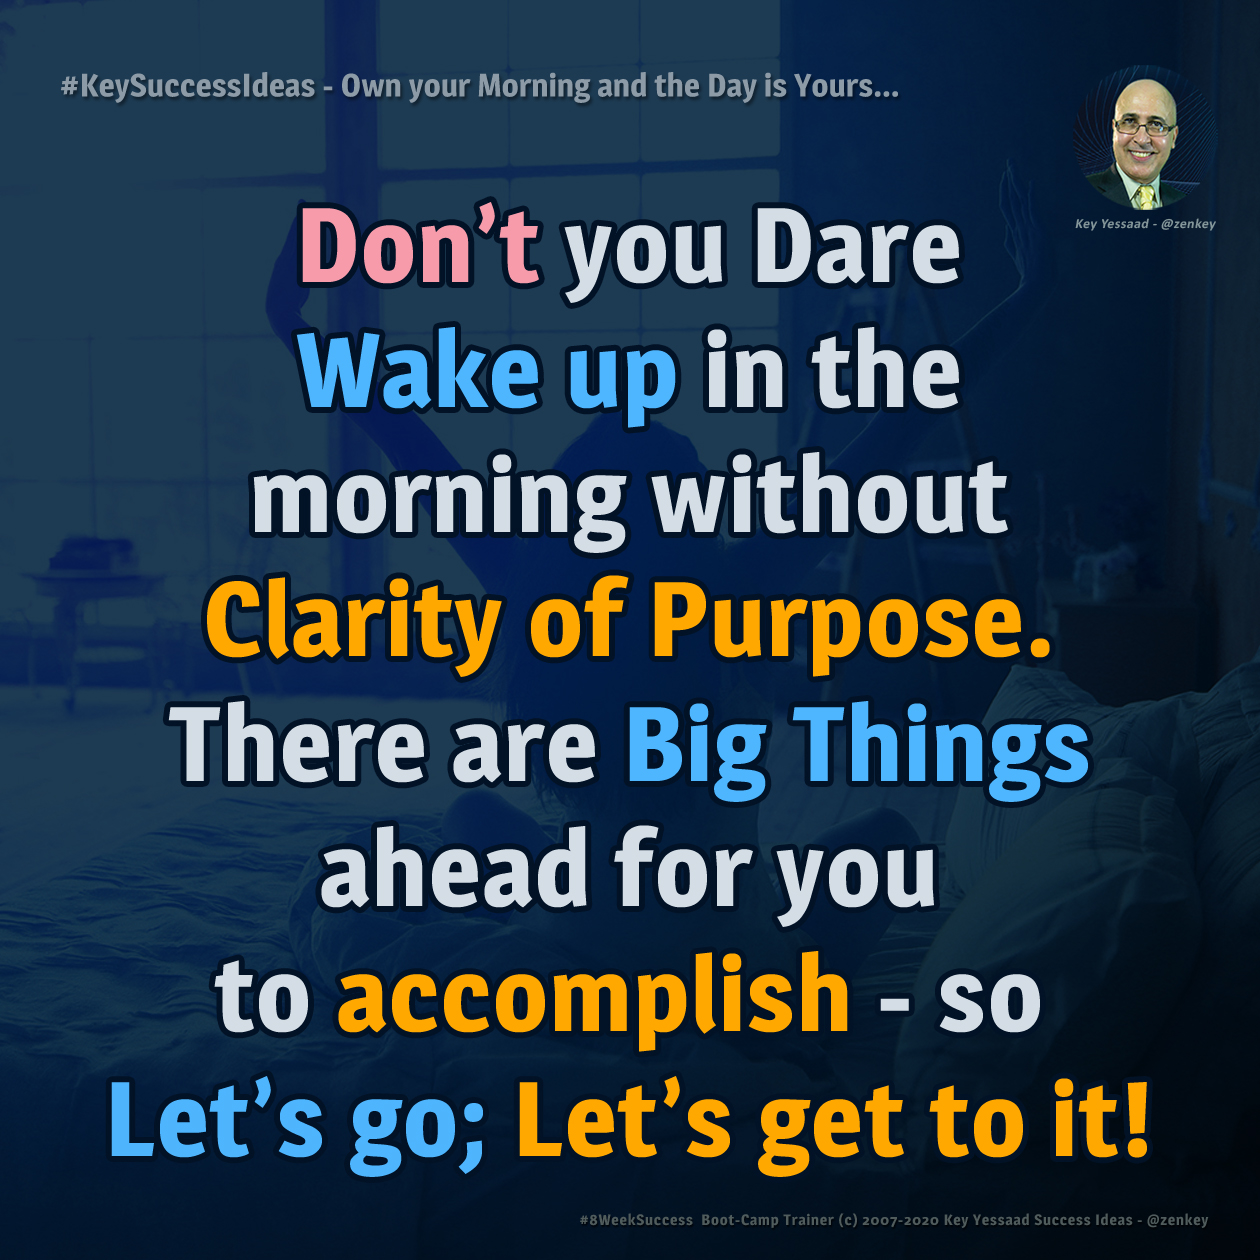 Own your Morning and the Day is Yours... - #KeySuccessIdeas